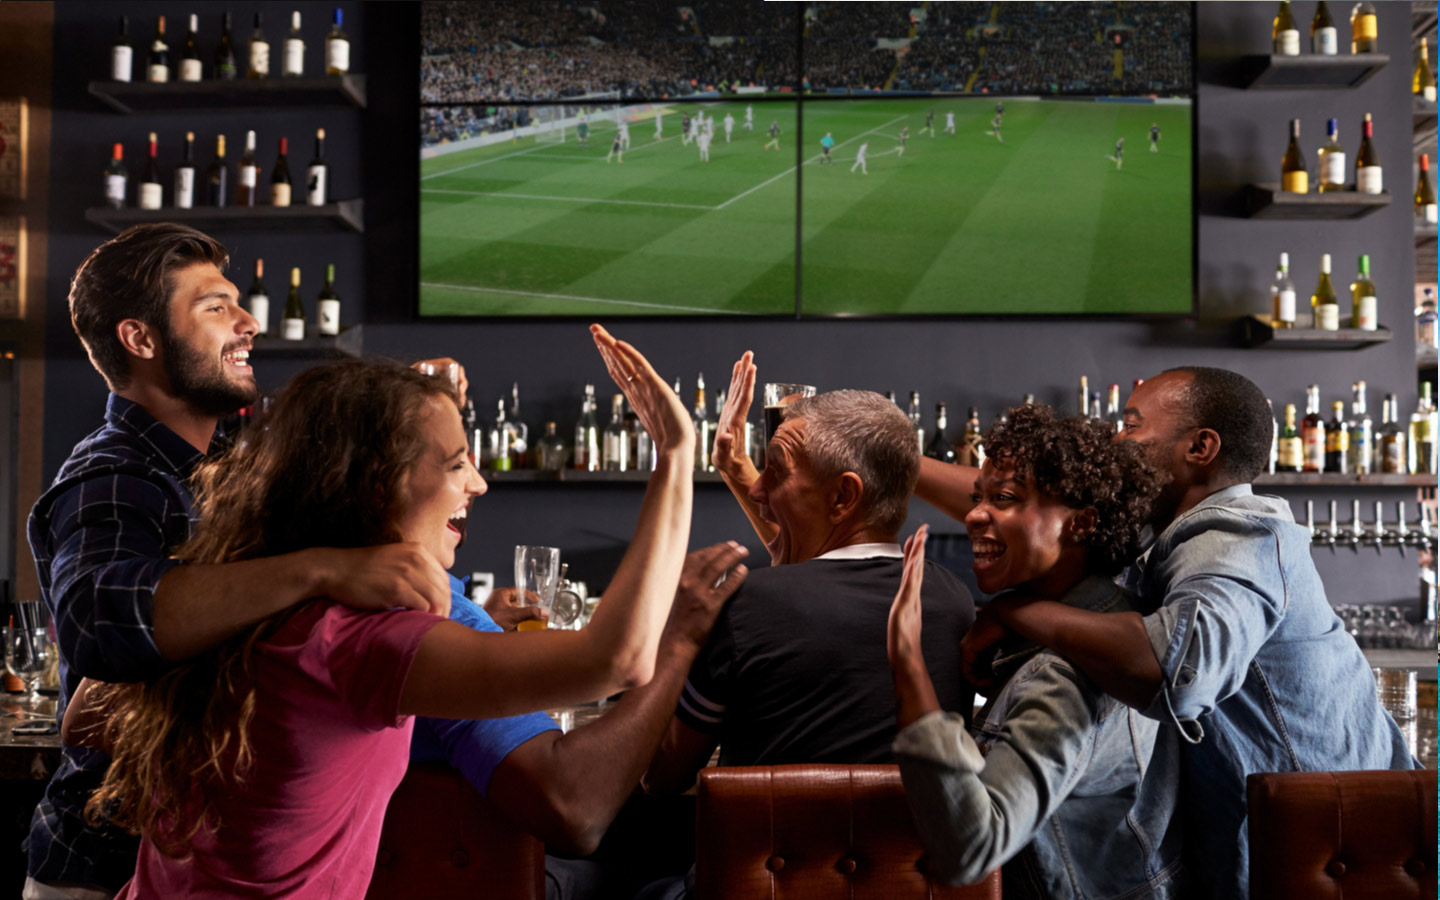 Pubs to watch the FIFA World Cup in Dubai